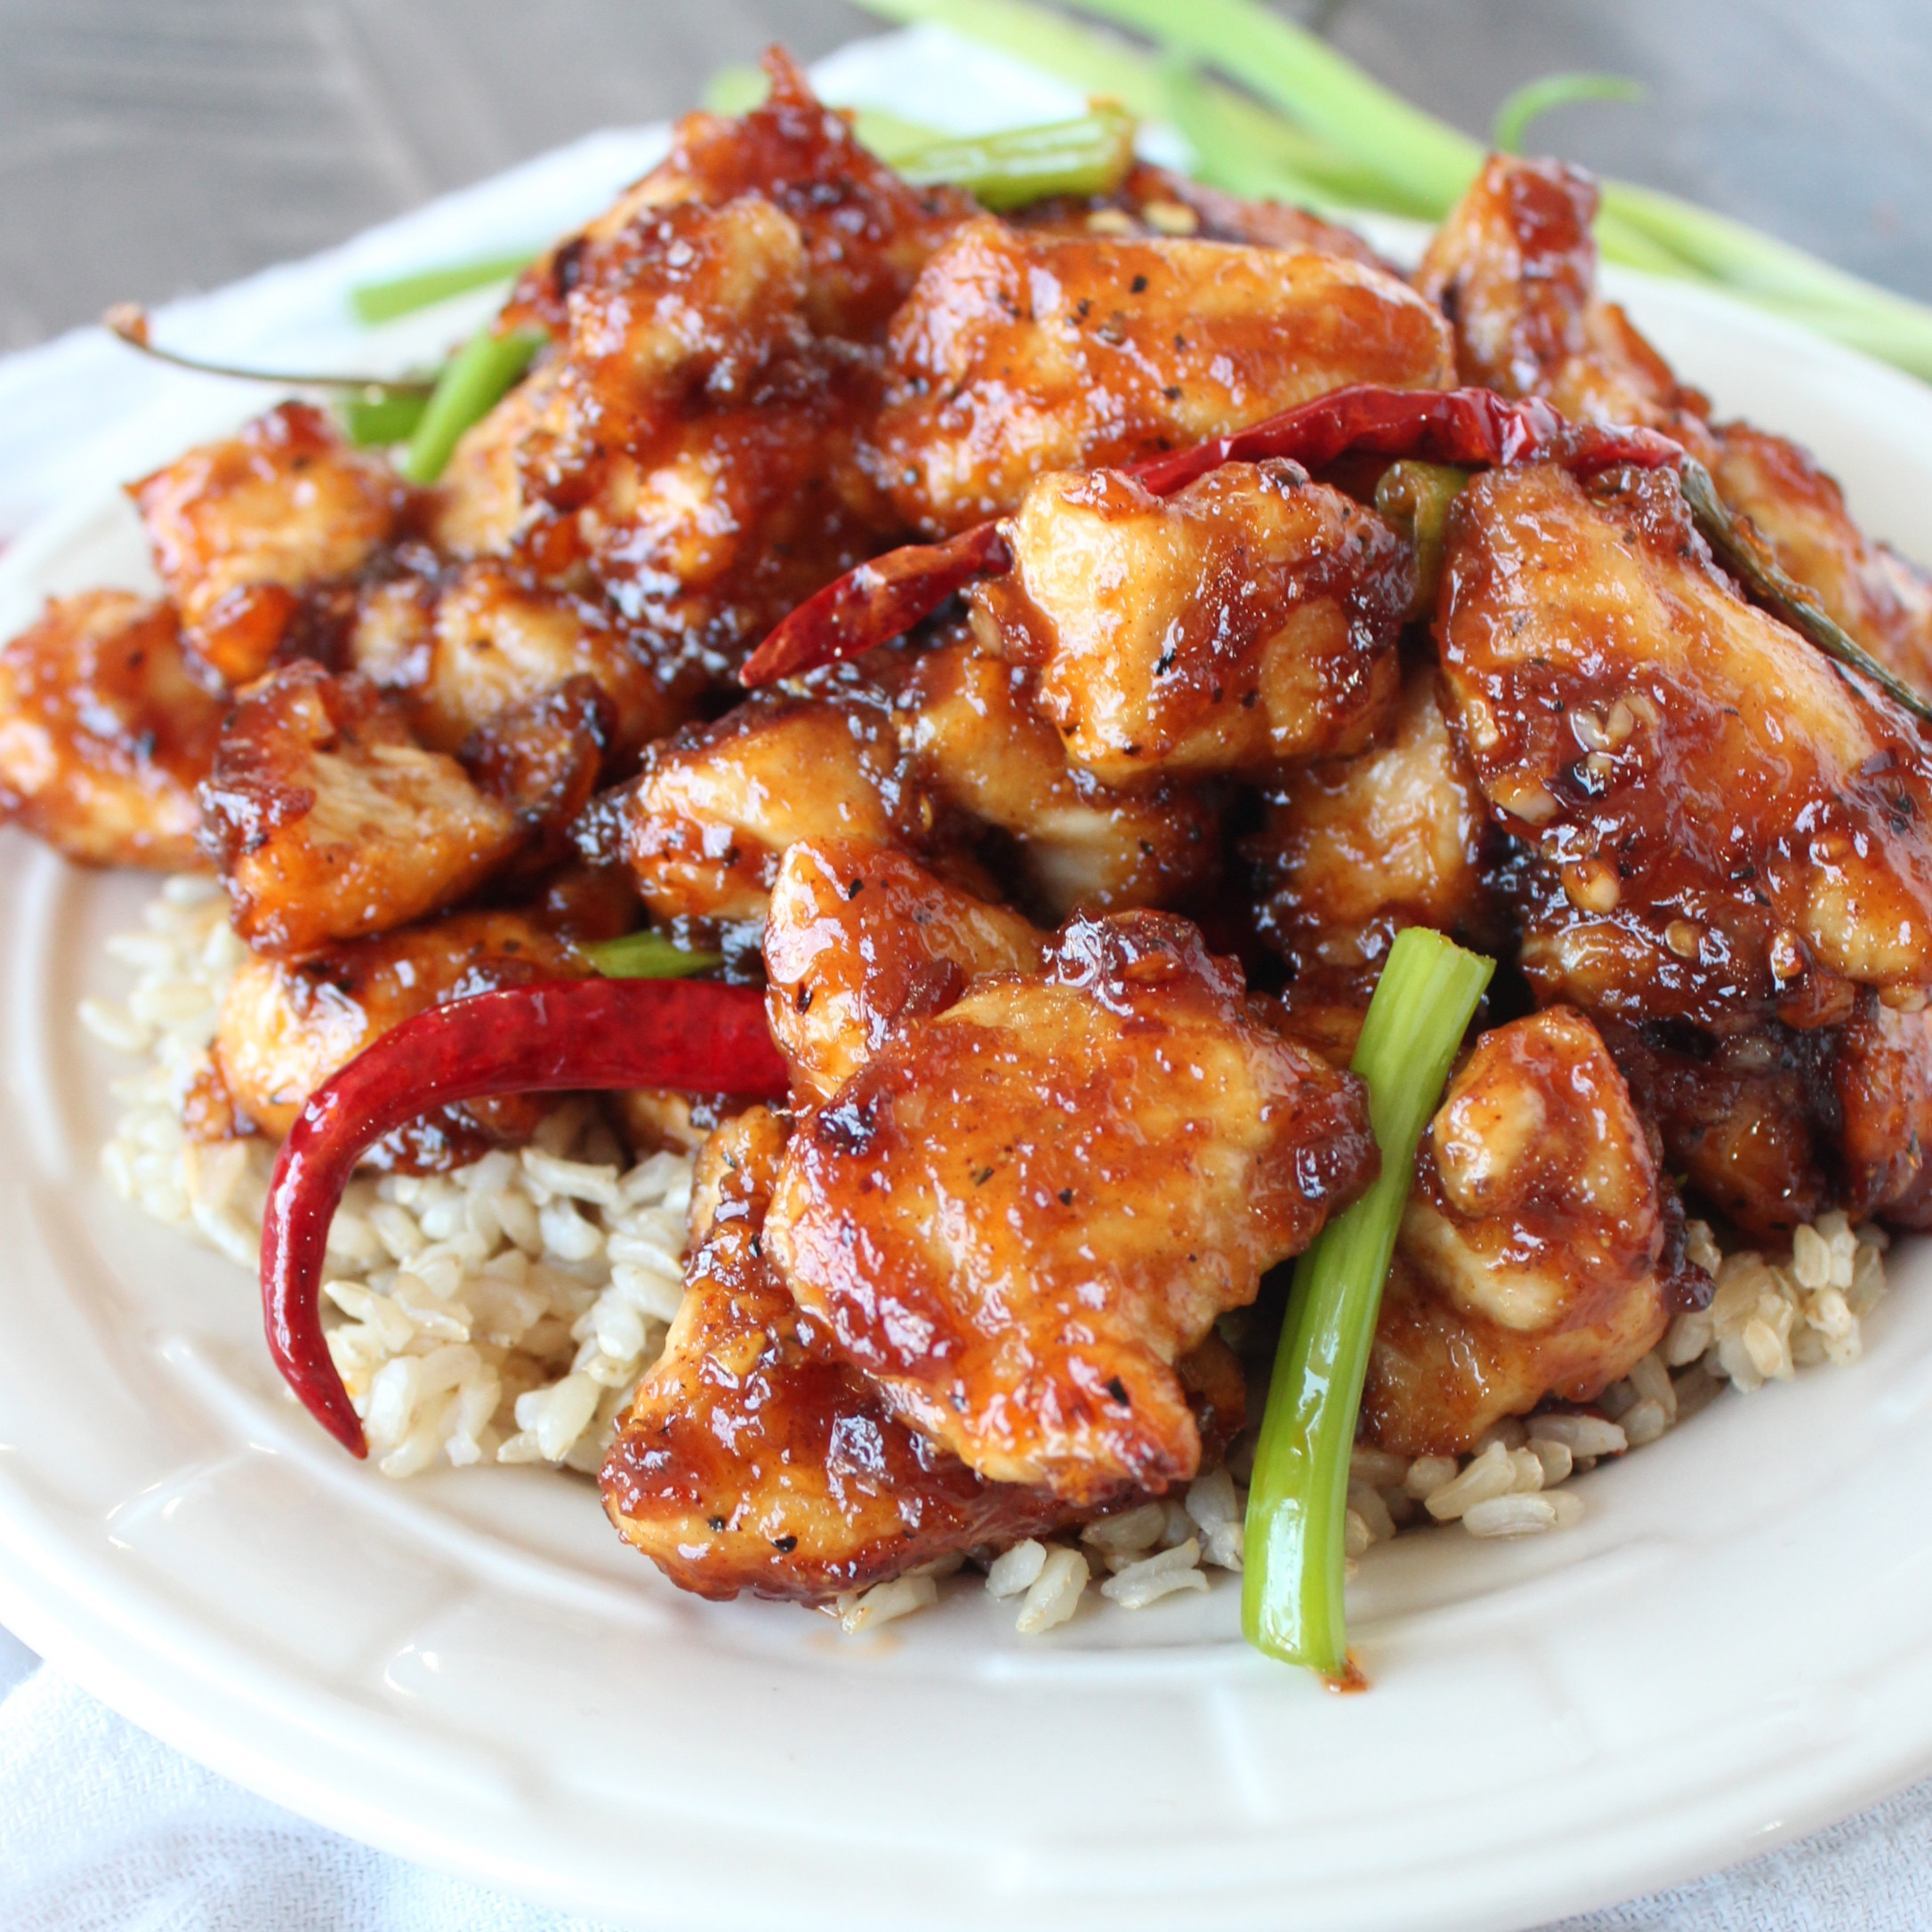 Gluten Free Chinese Food Recipes  Gluten Free General Tso s Chicken Recipe